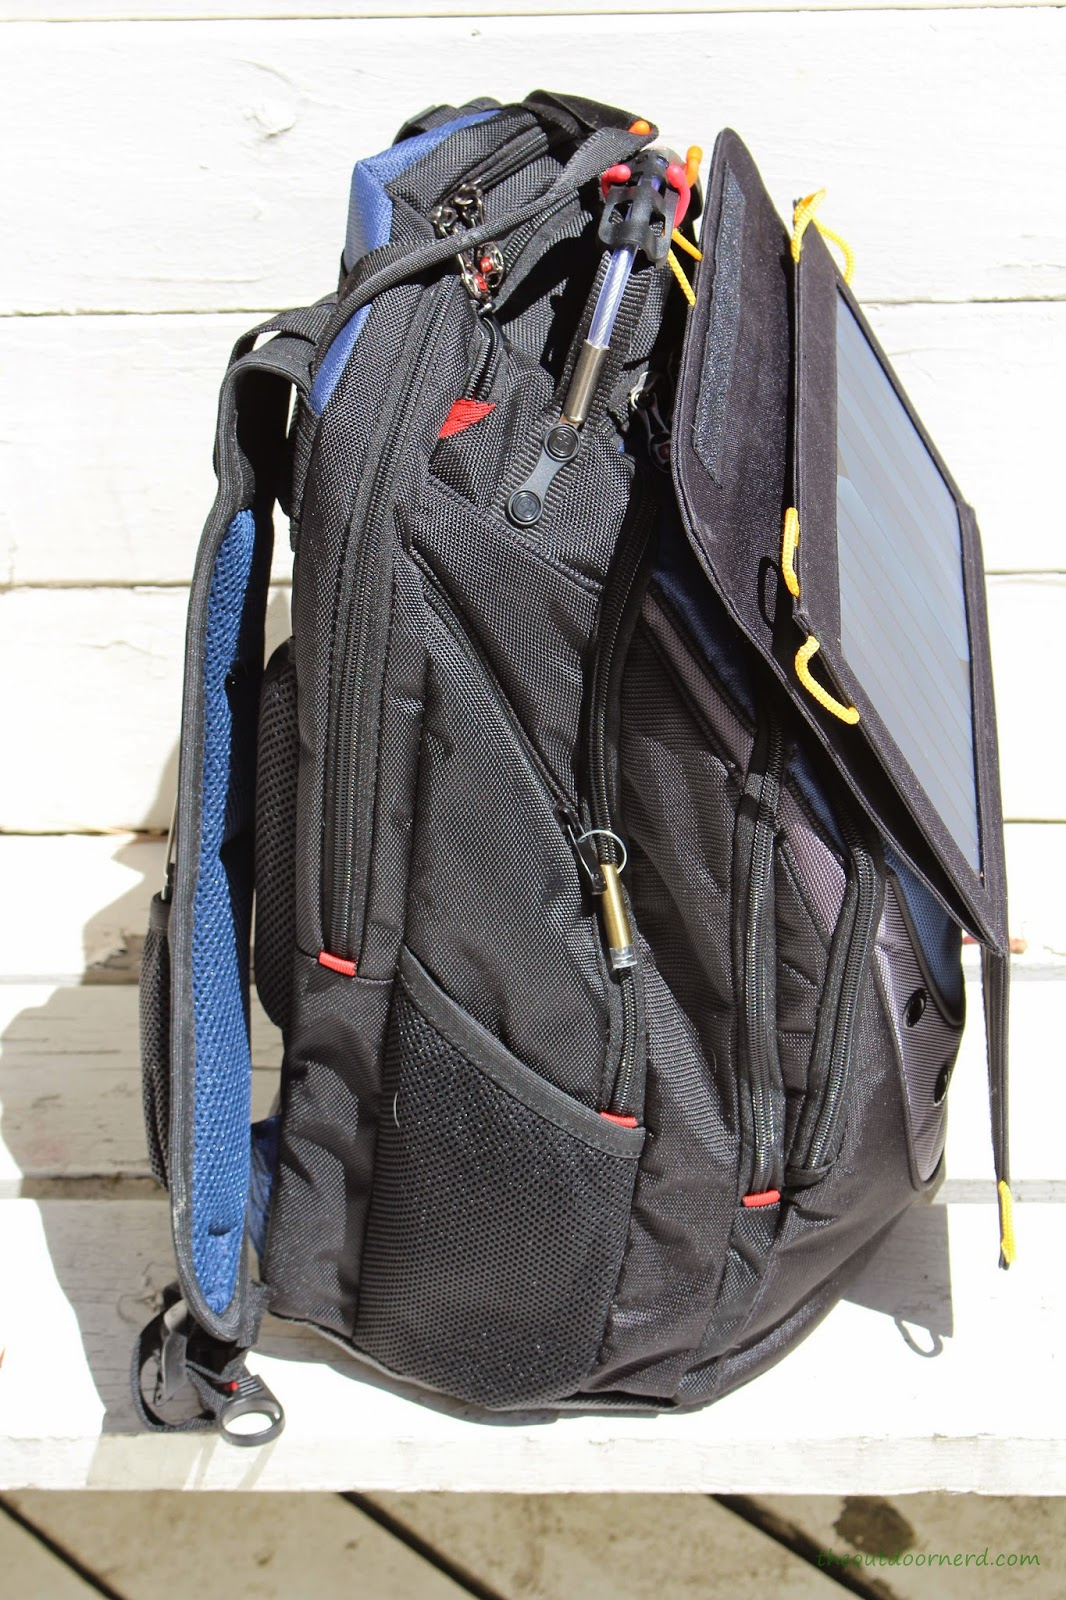 Levin Sol-Wing 13W Solar USB Charger: Attached to SwissGear Backpack: Side View